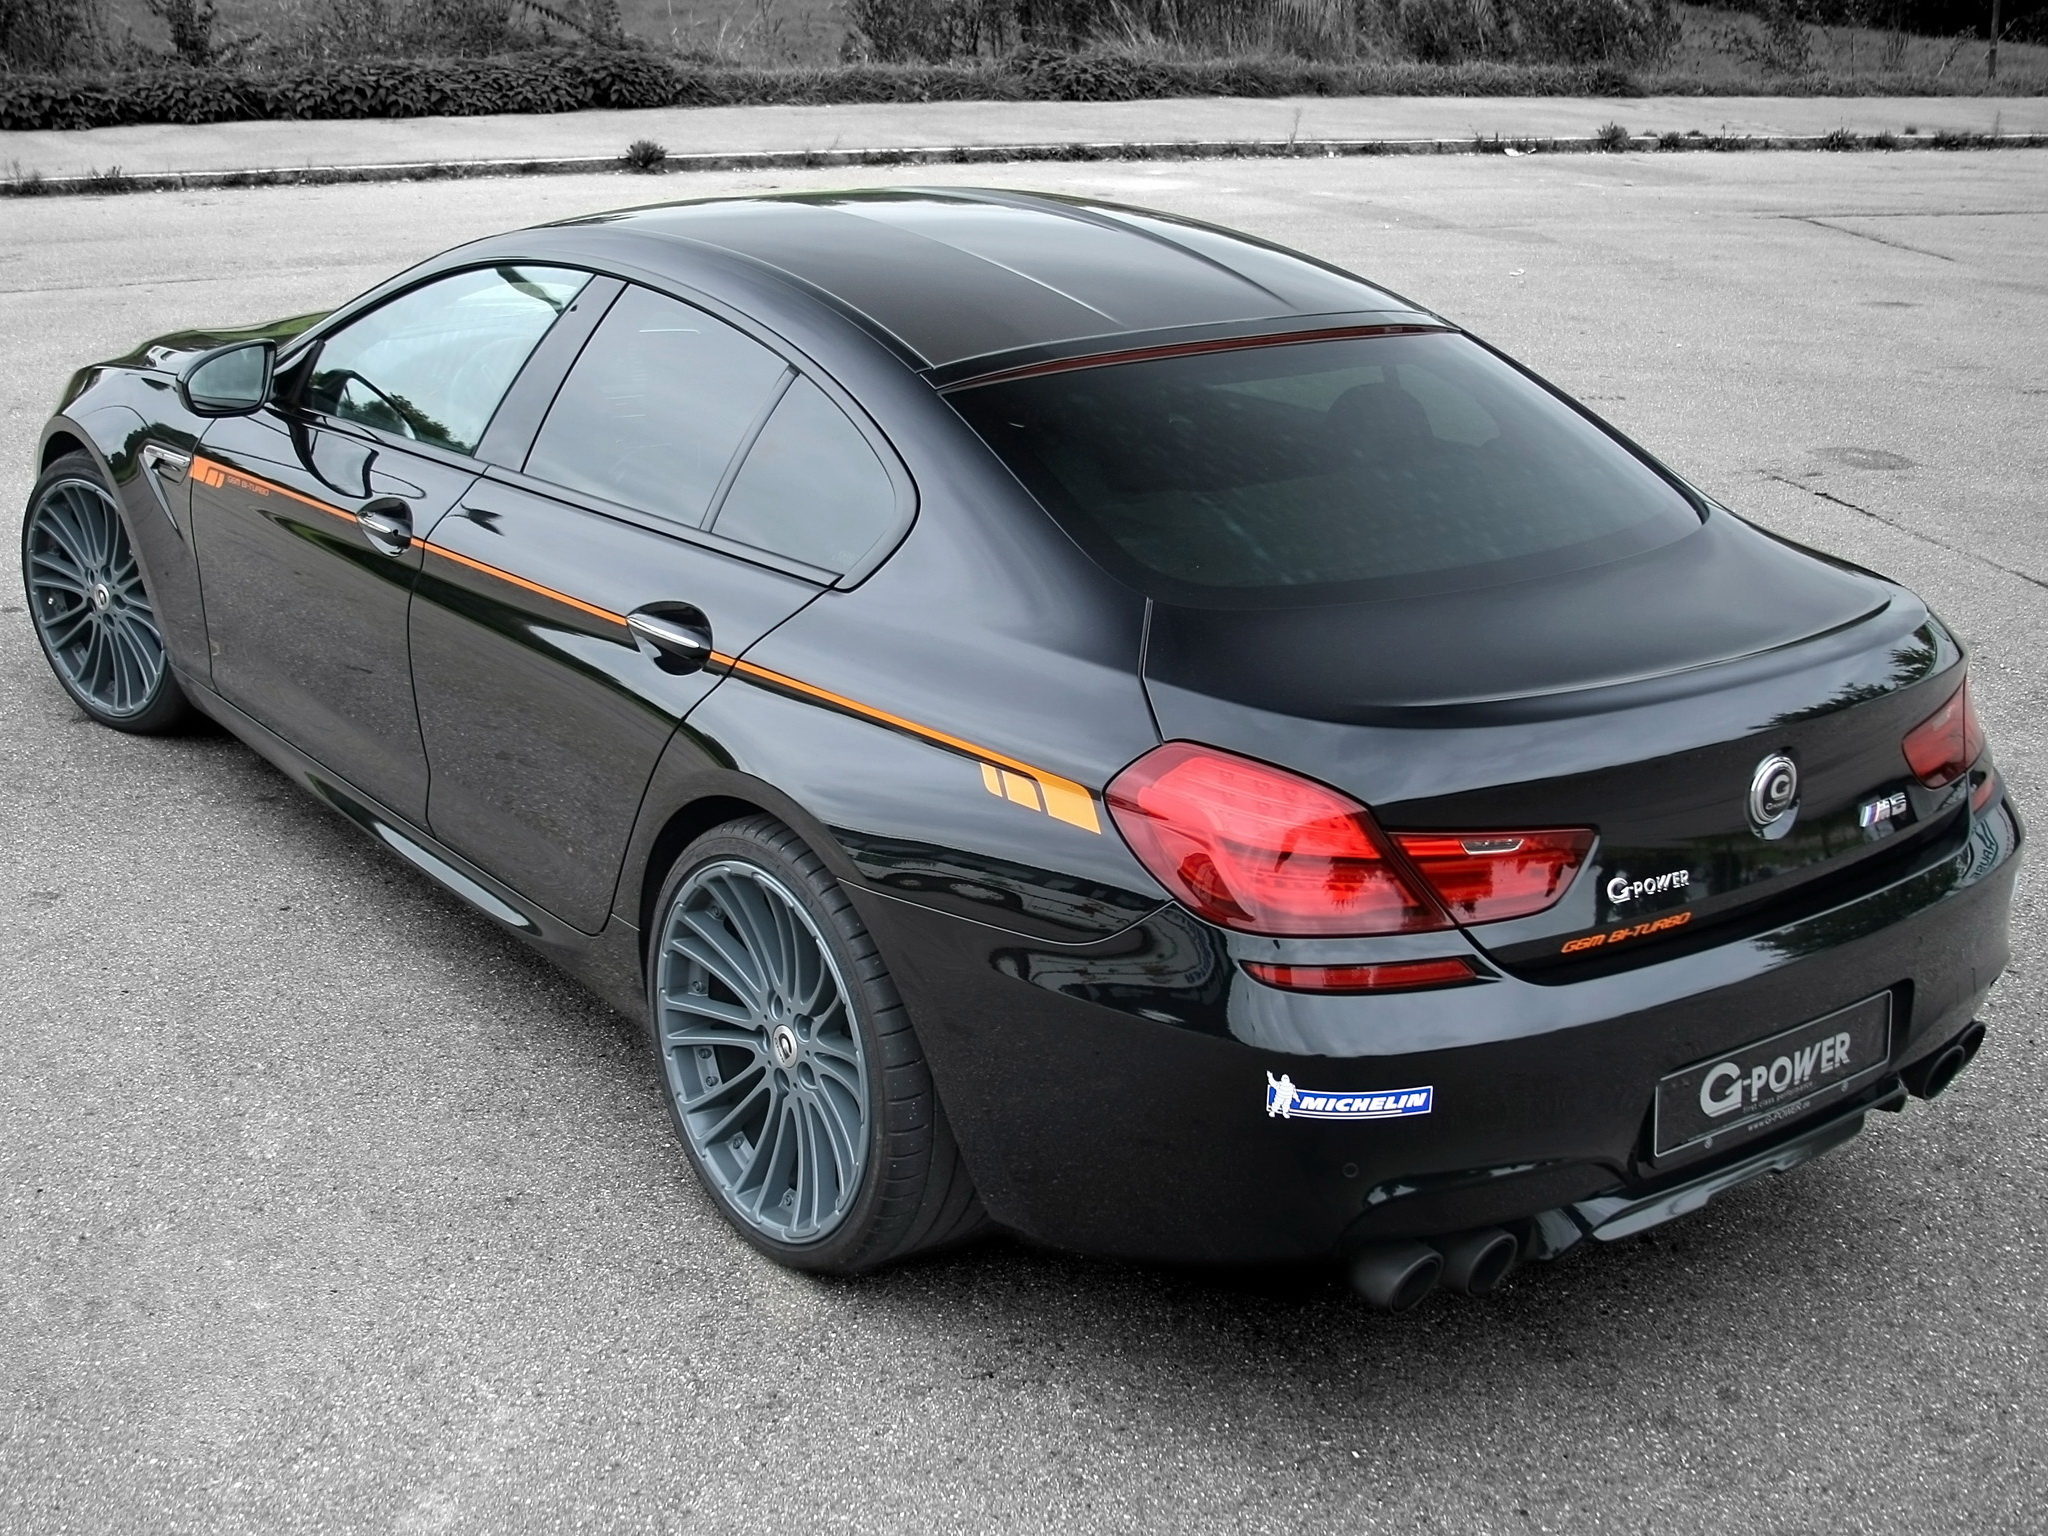 2013 G Power Bmw M6 Gran Coupe F06 Tuning M 6 G Wallpaper 2048x1536 170909 Wallpaperup